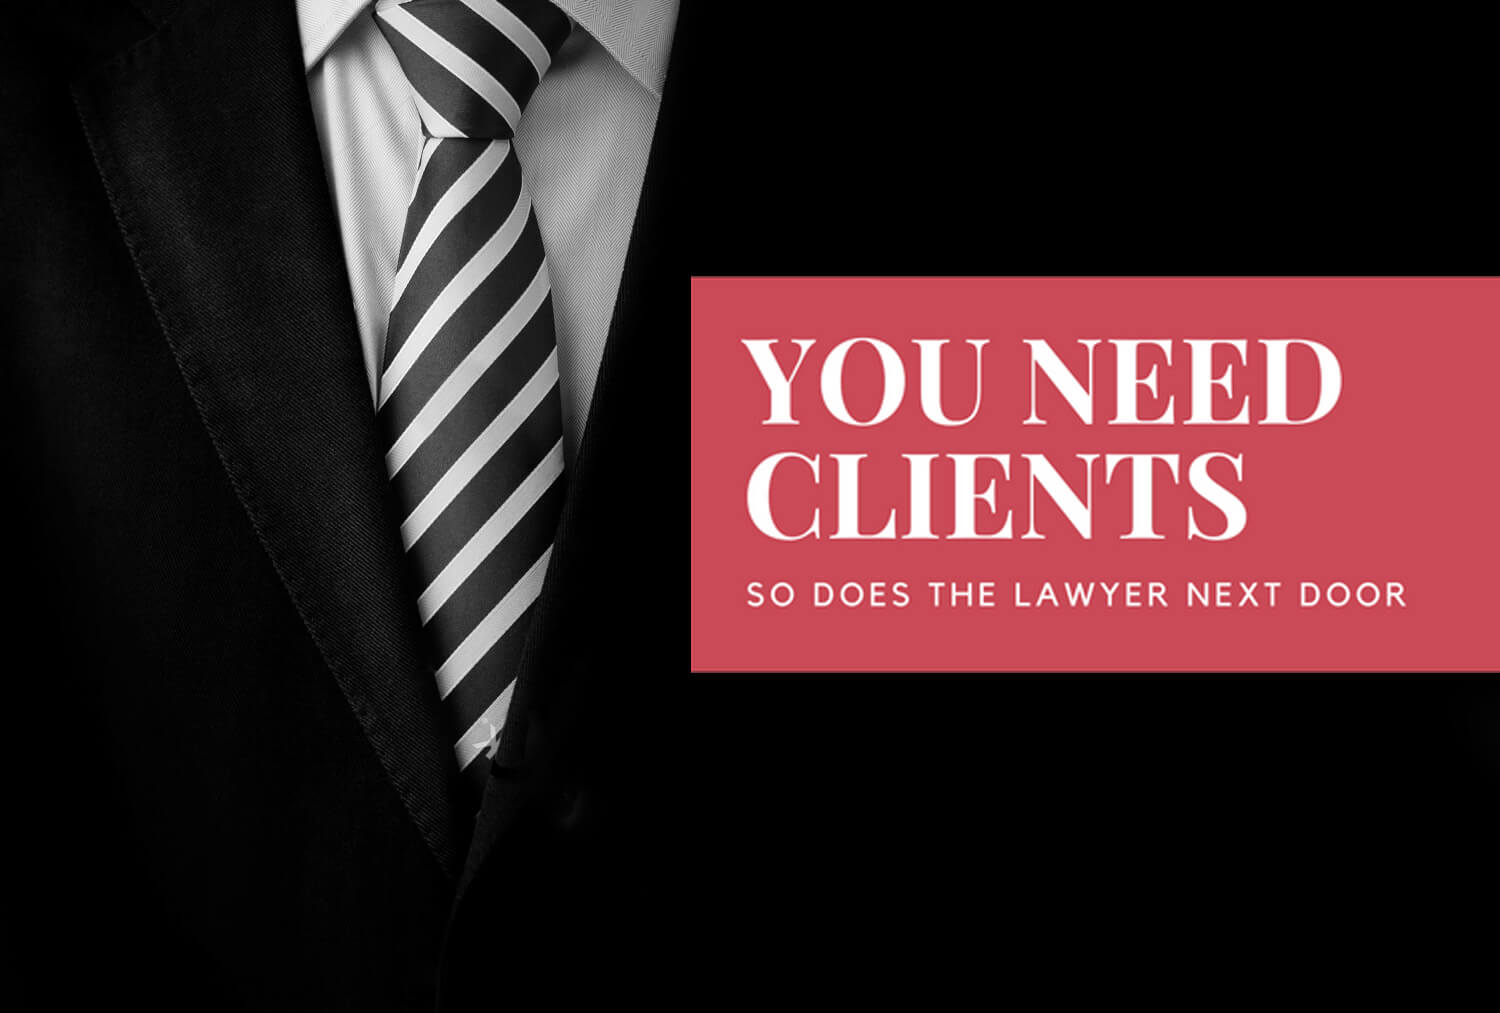 Criminal Lawyers marketing solution by Alan Weiss - CriminalLegal.com.au